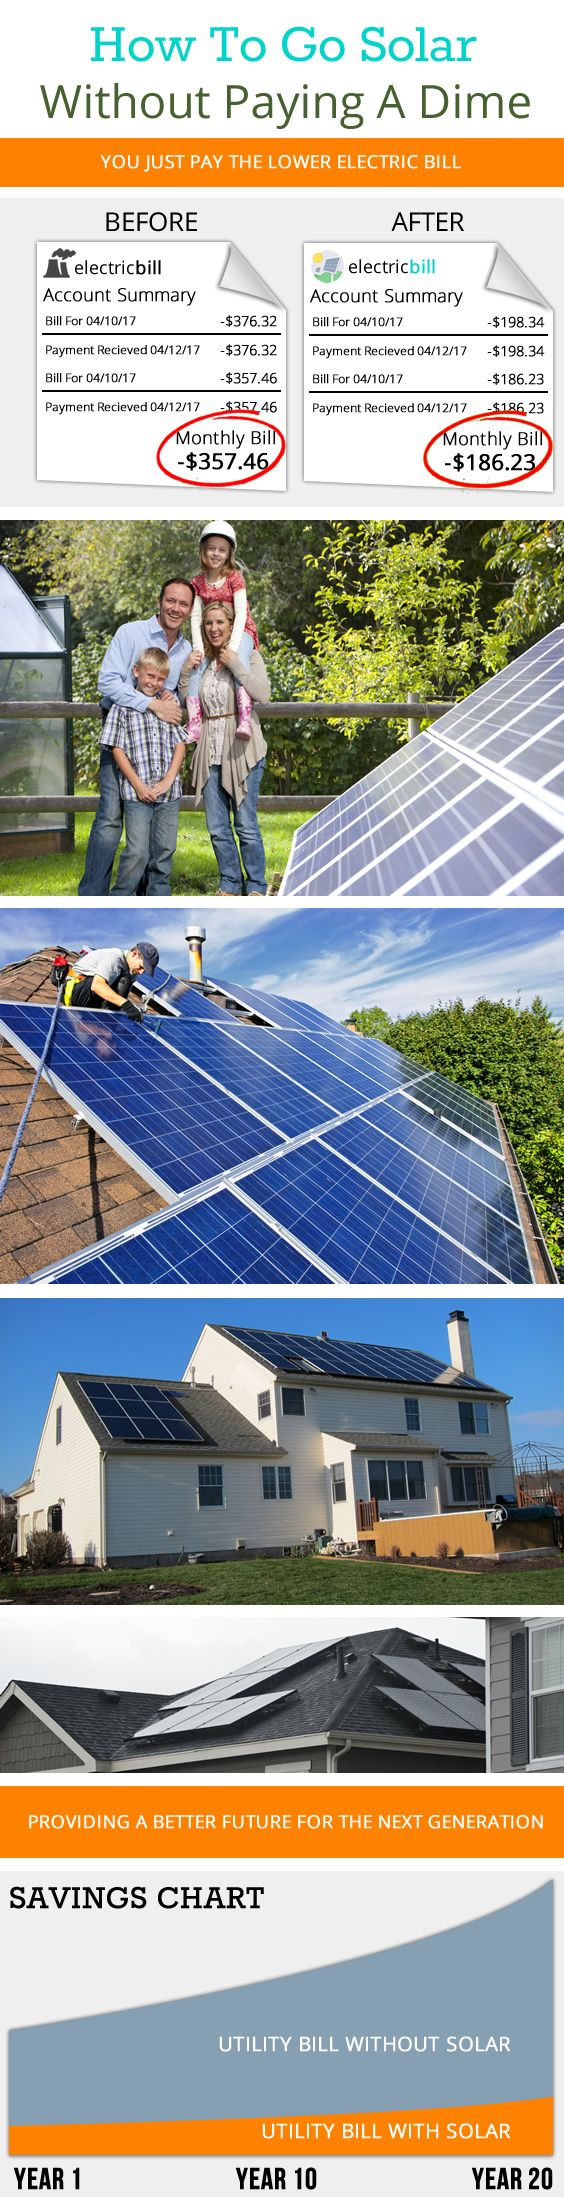 Middle-Class Families Are Set To Receive Solar Panels With No Upfront Costs In.. #solarpanels #solarenergy #solar